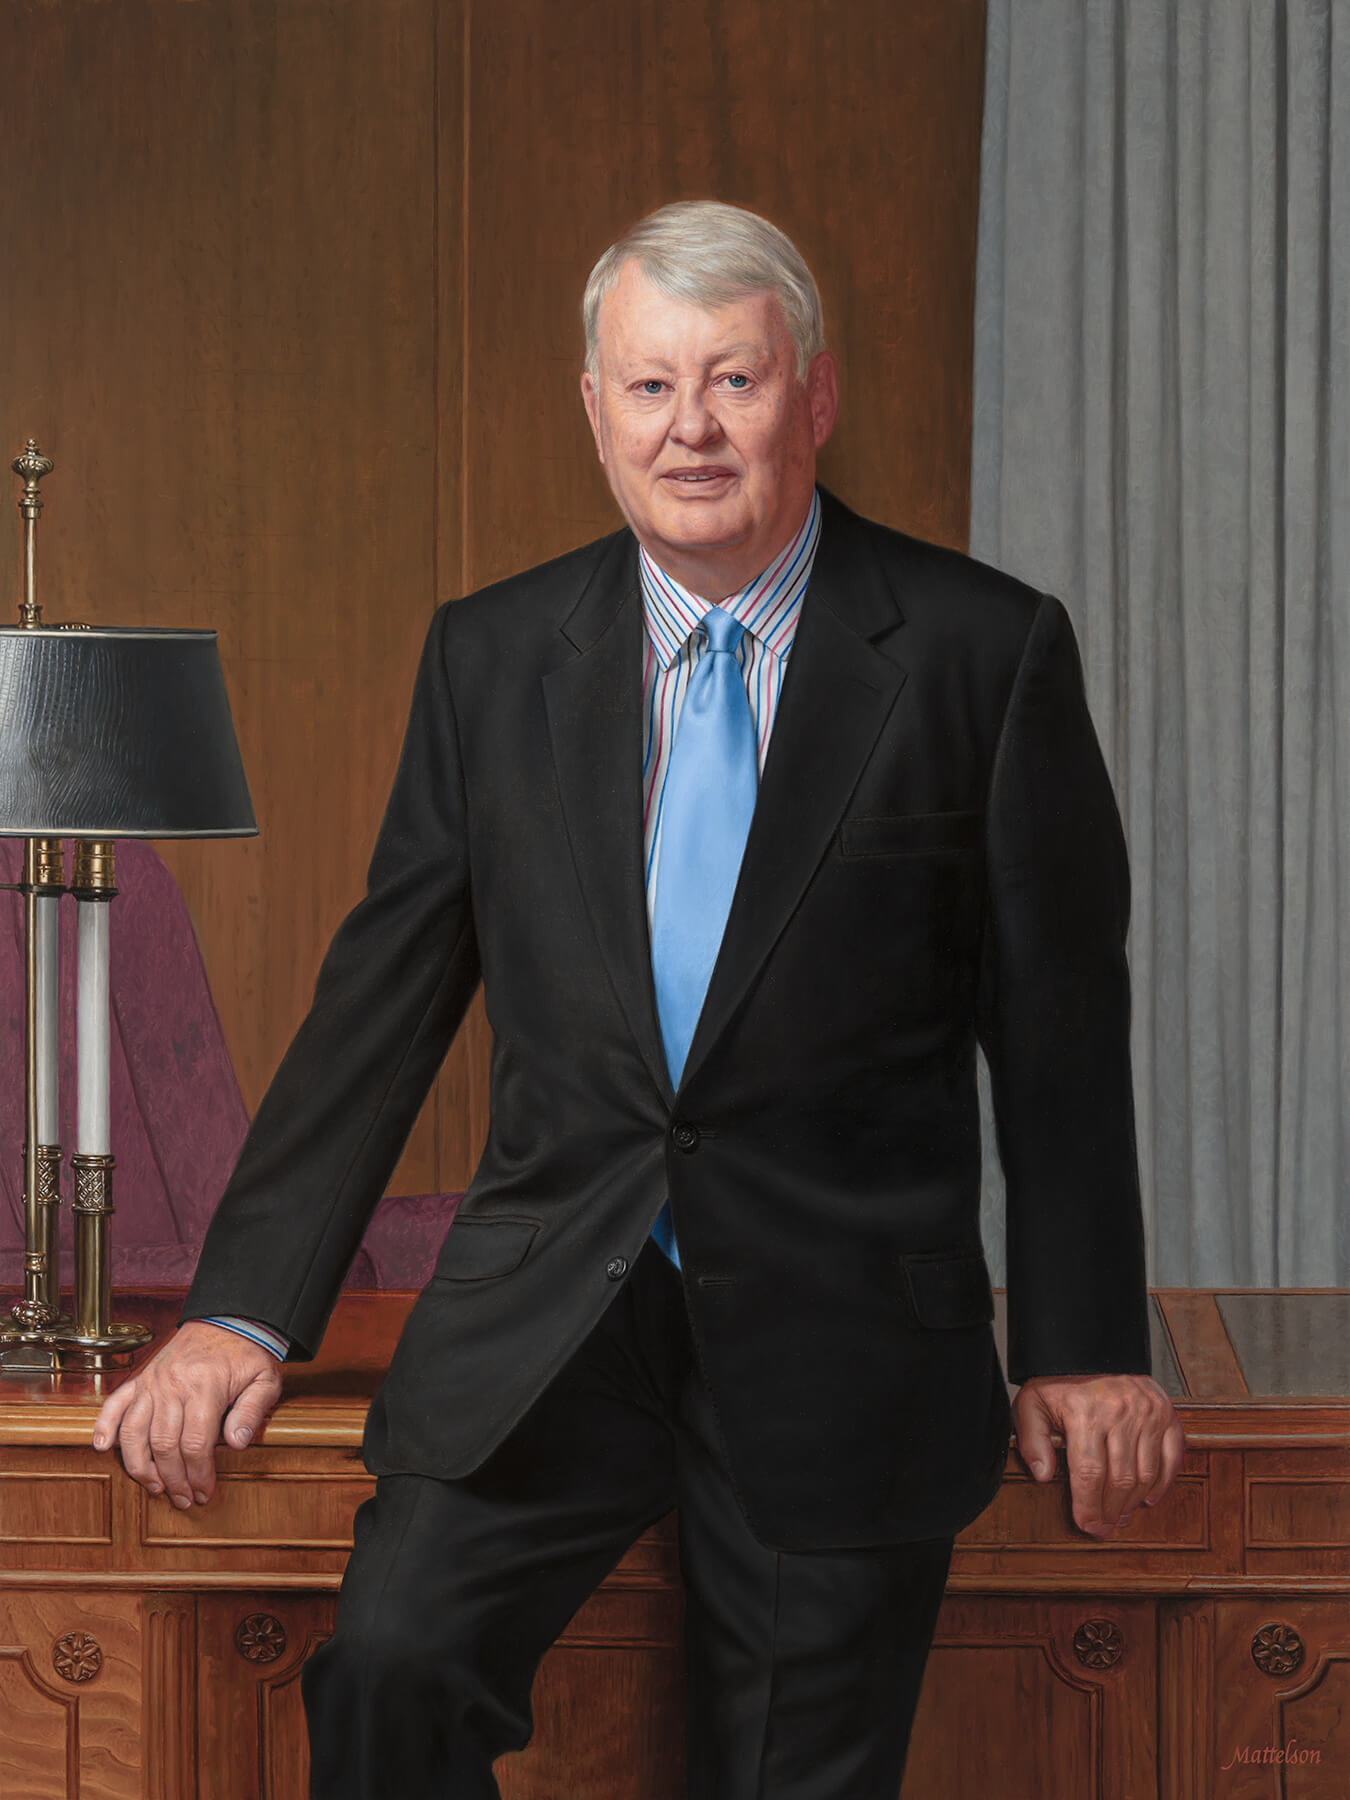 Velcro chairman of the board commissioned oil portraits.